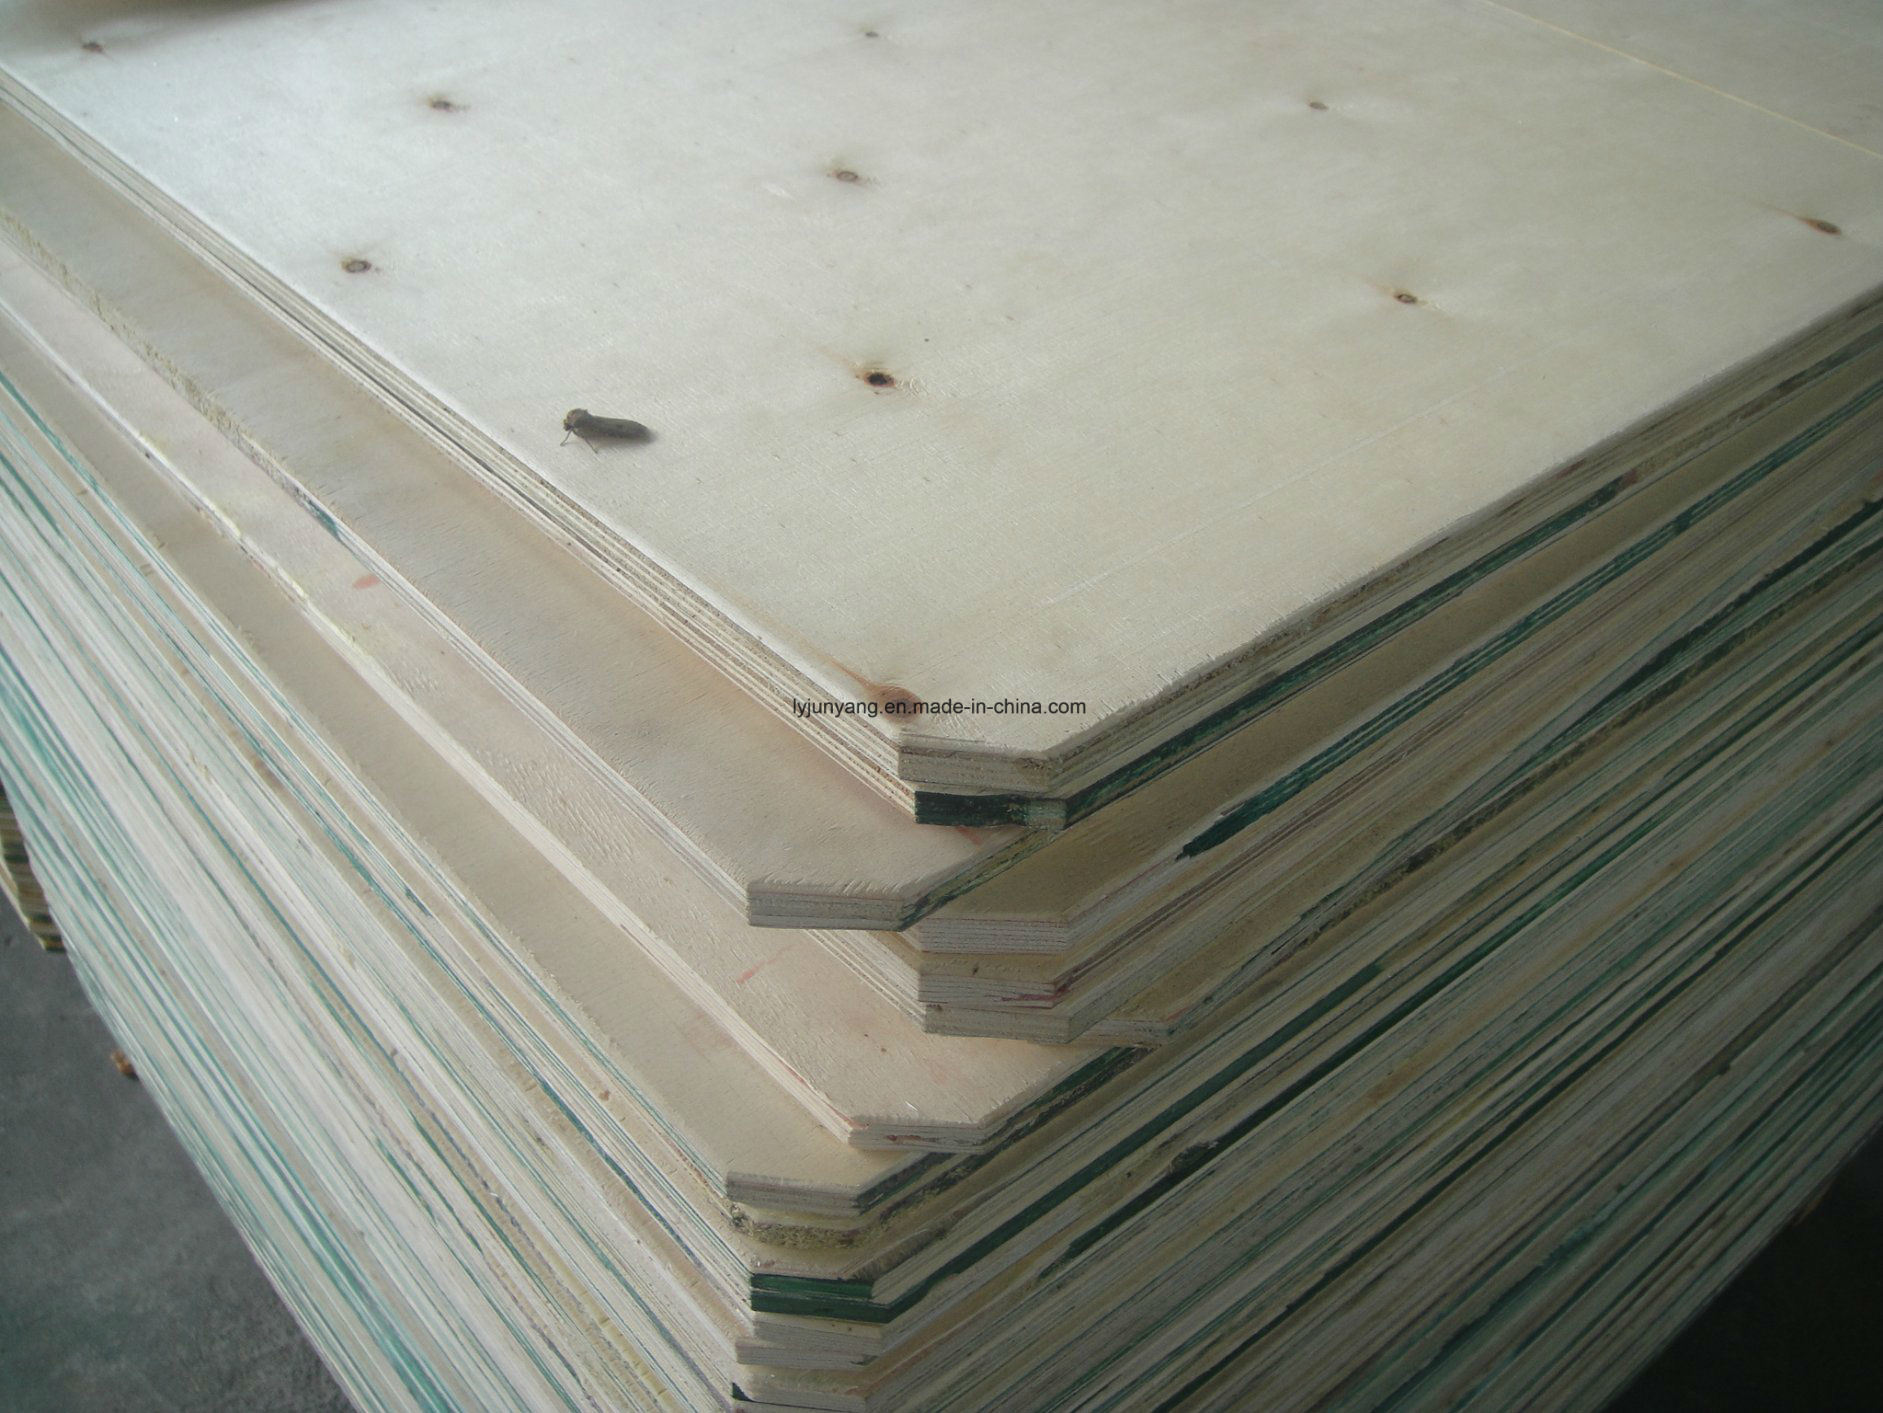 China Costs Prices Pallet Use Plywood Poplar Wood with Ce ...